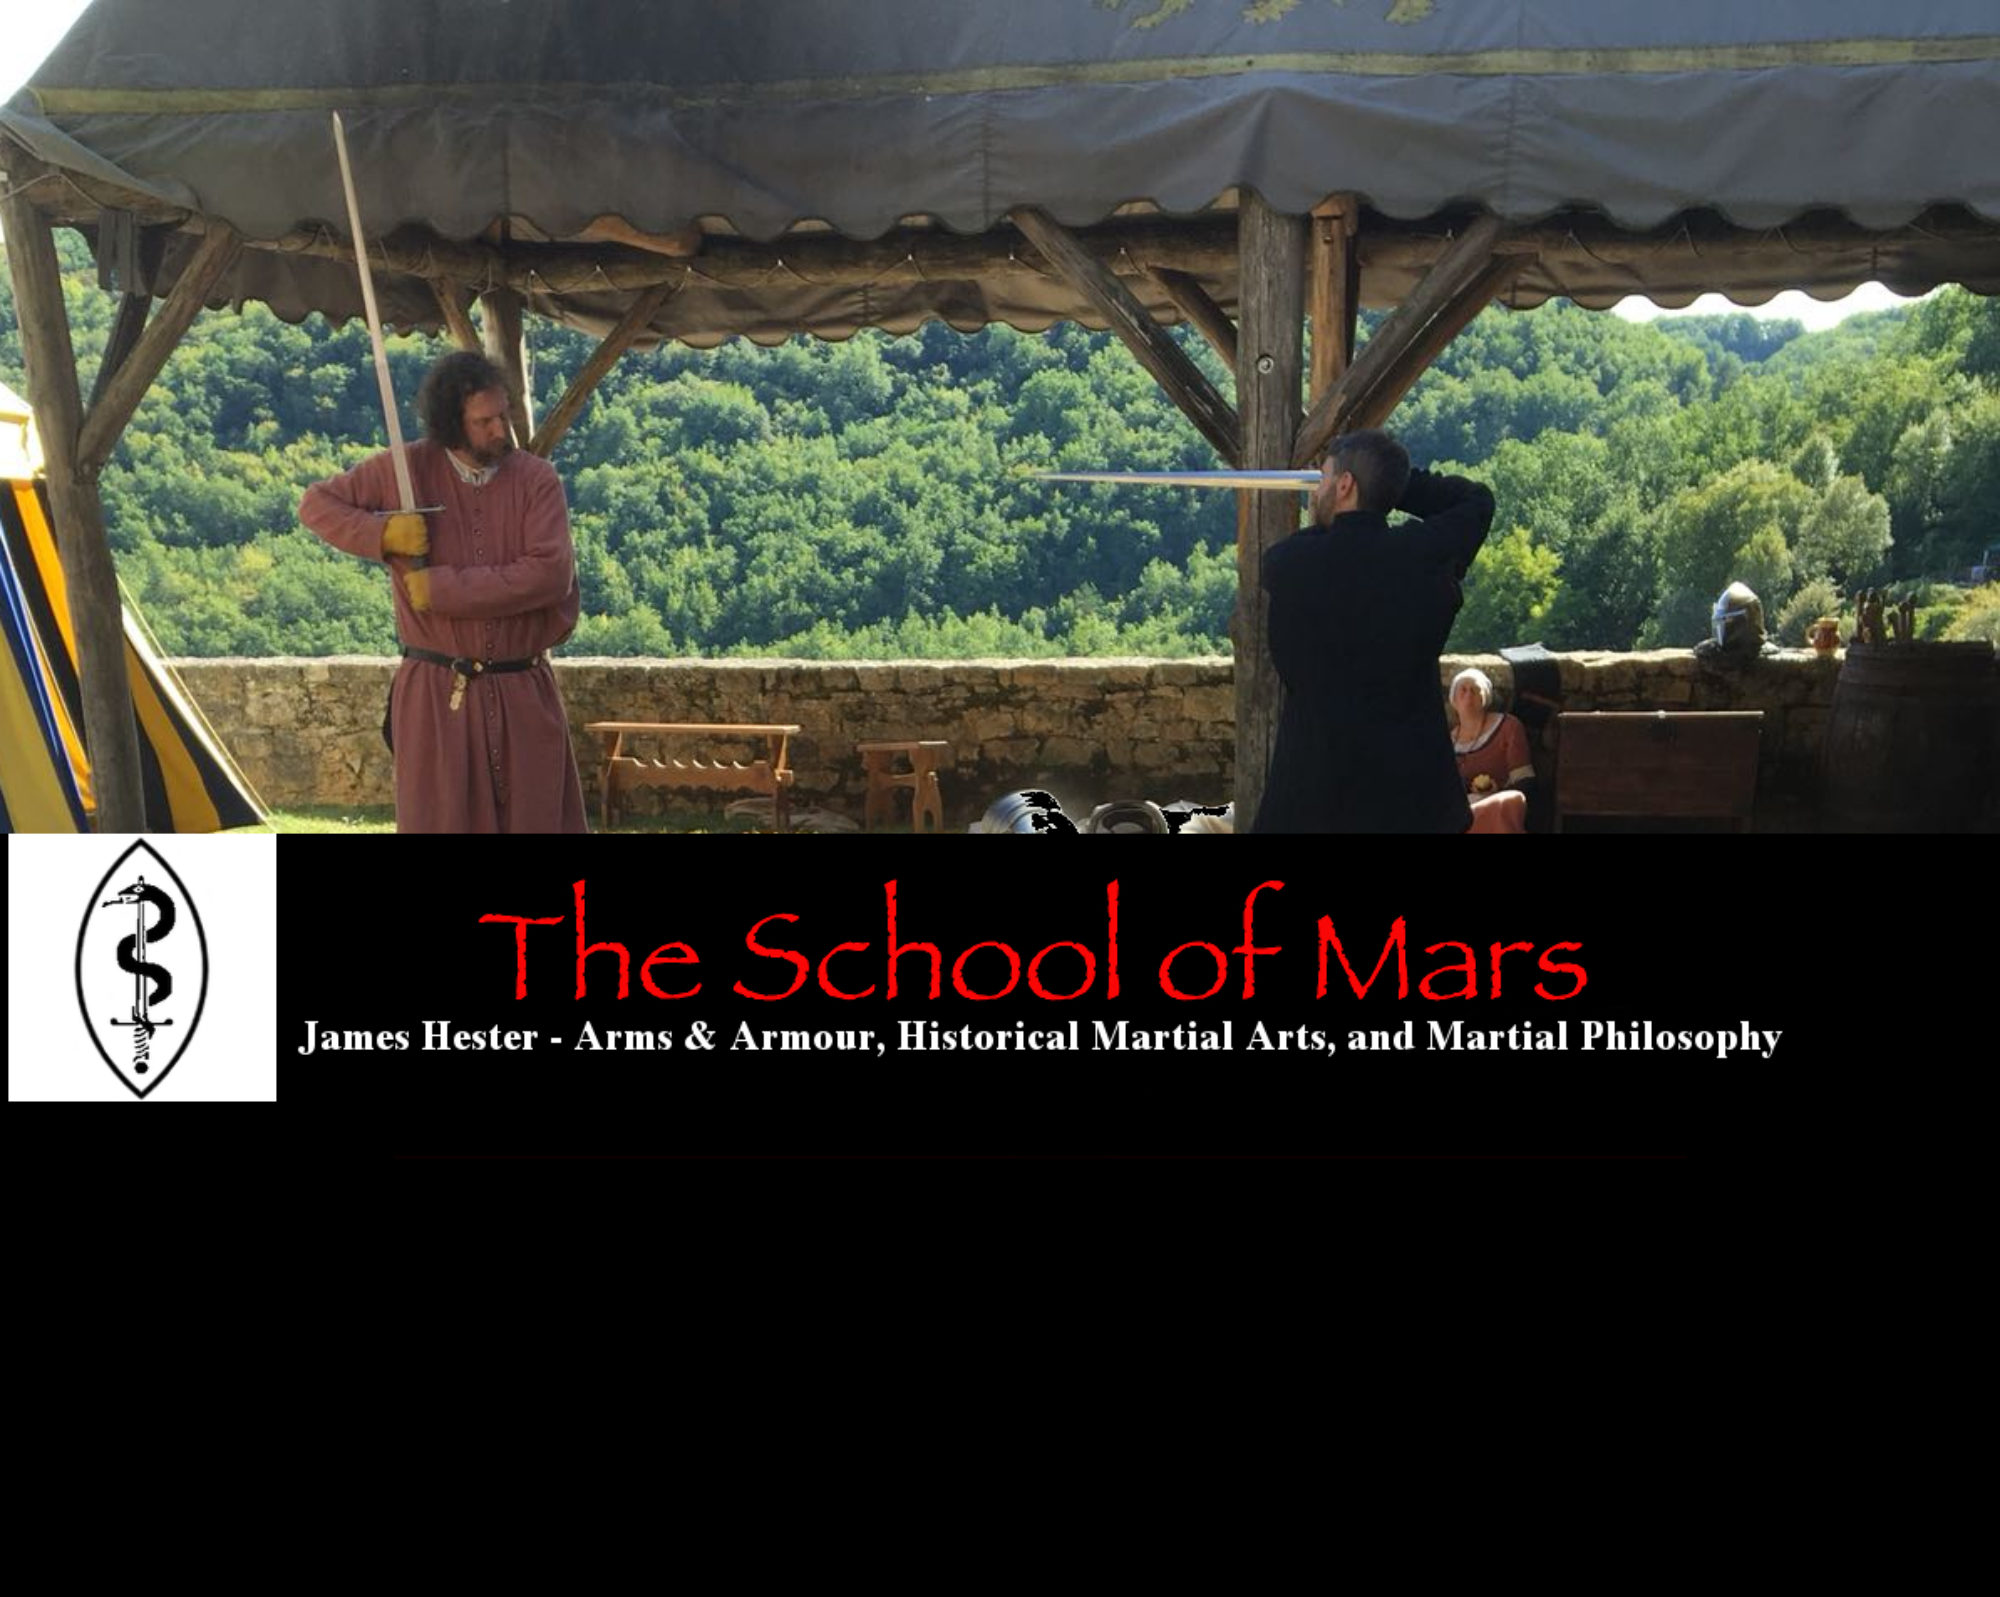 The School of mars